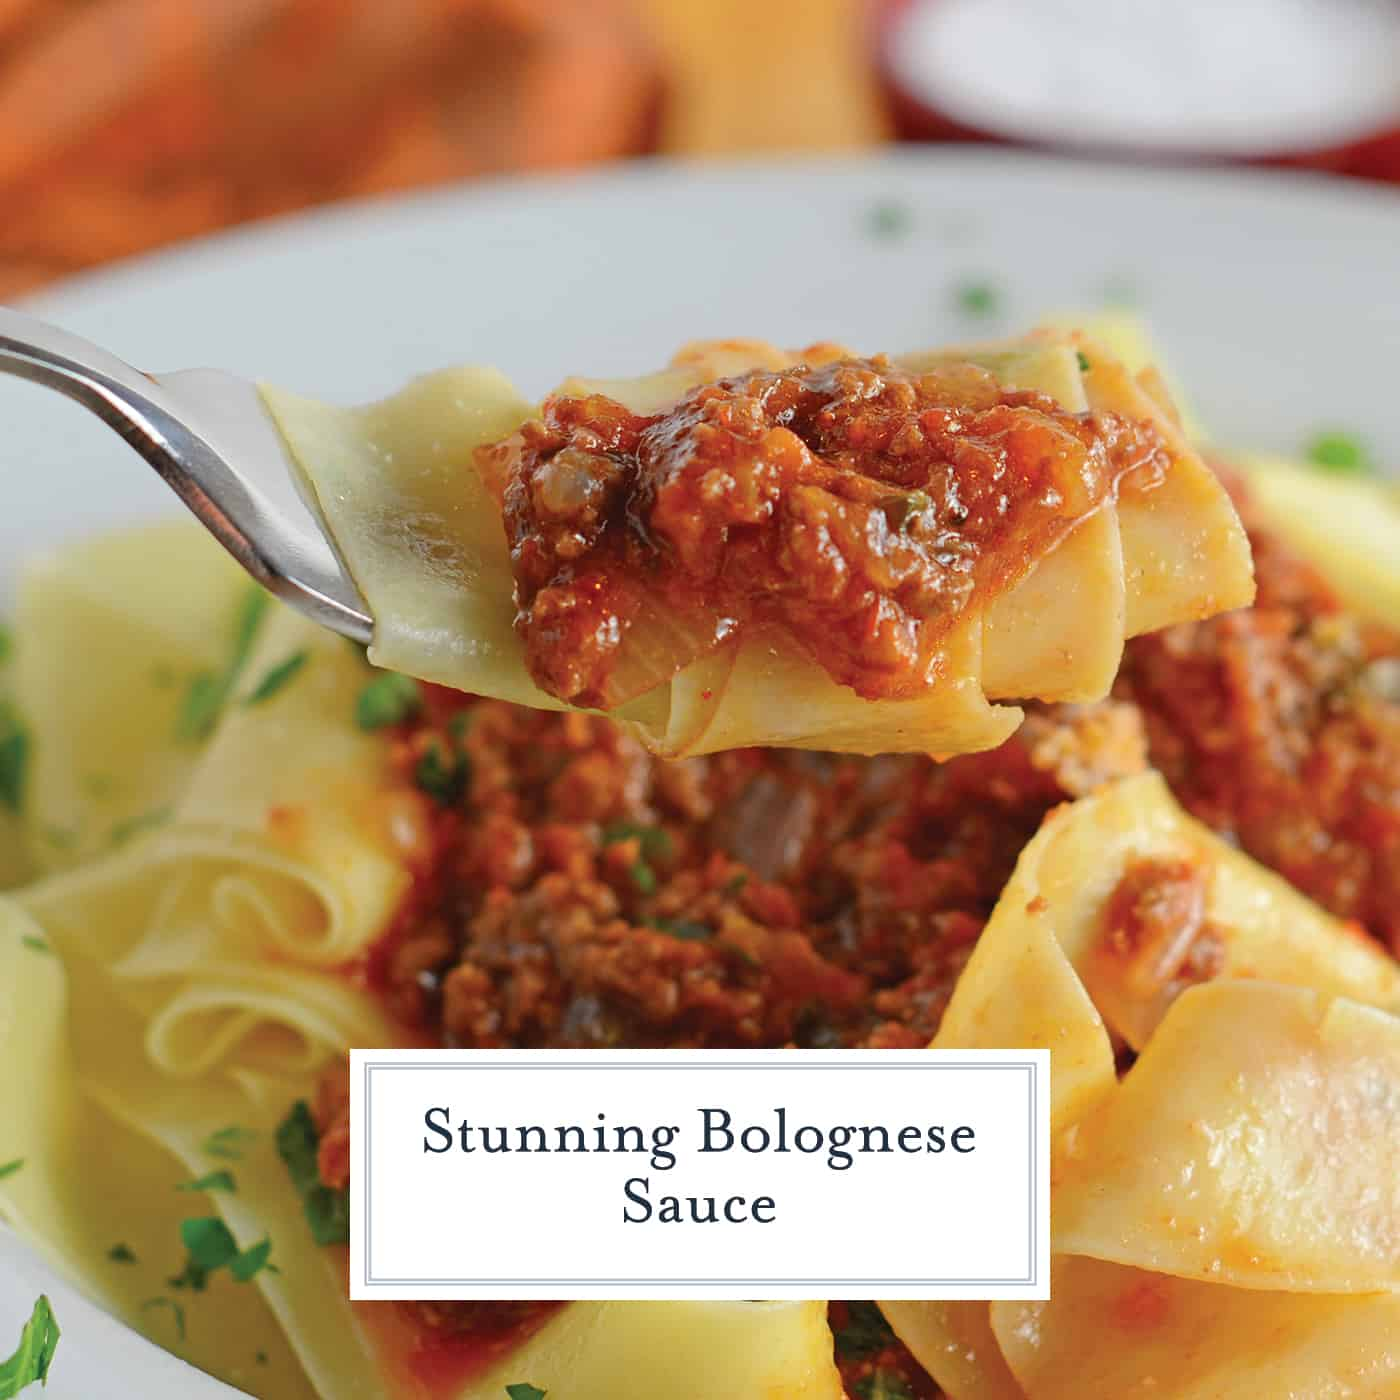 Bolognese Sauce is a classic, rich and hearty Italian sauce made with ground meat and coarsely chopped vegetables. Serve over pasta or in lasagna. #bolognesesauce #bologneserecipe www.savoryexperiments.com